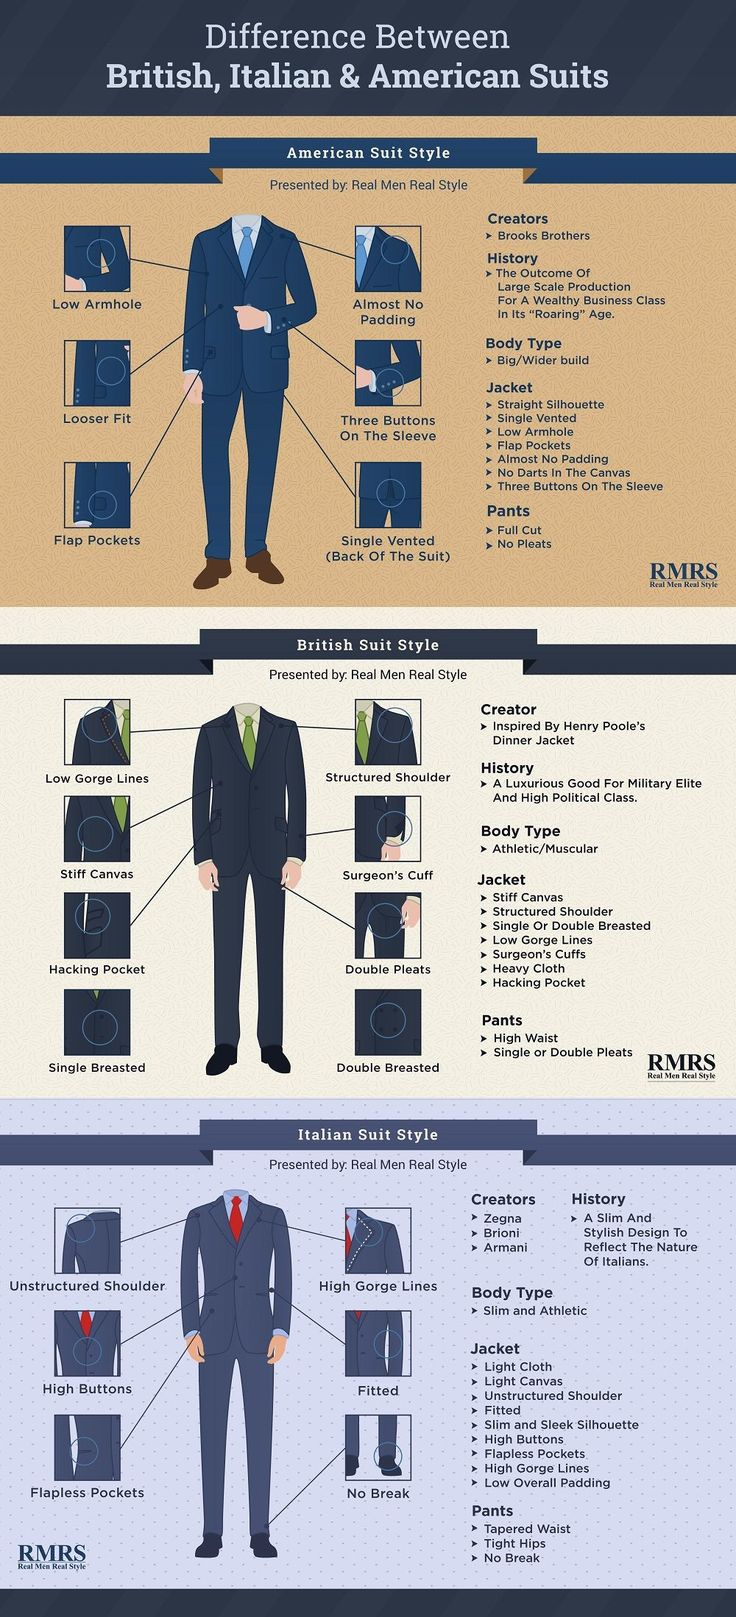 The difference between Italian, British & American suits